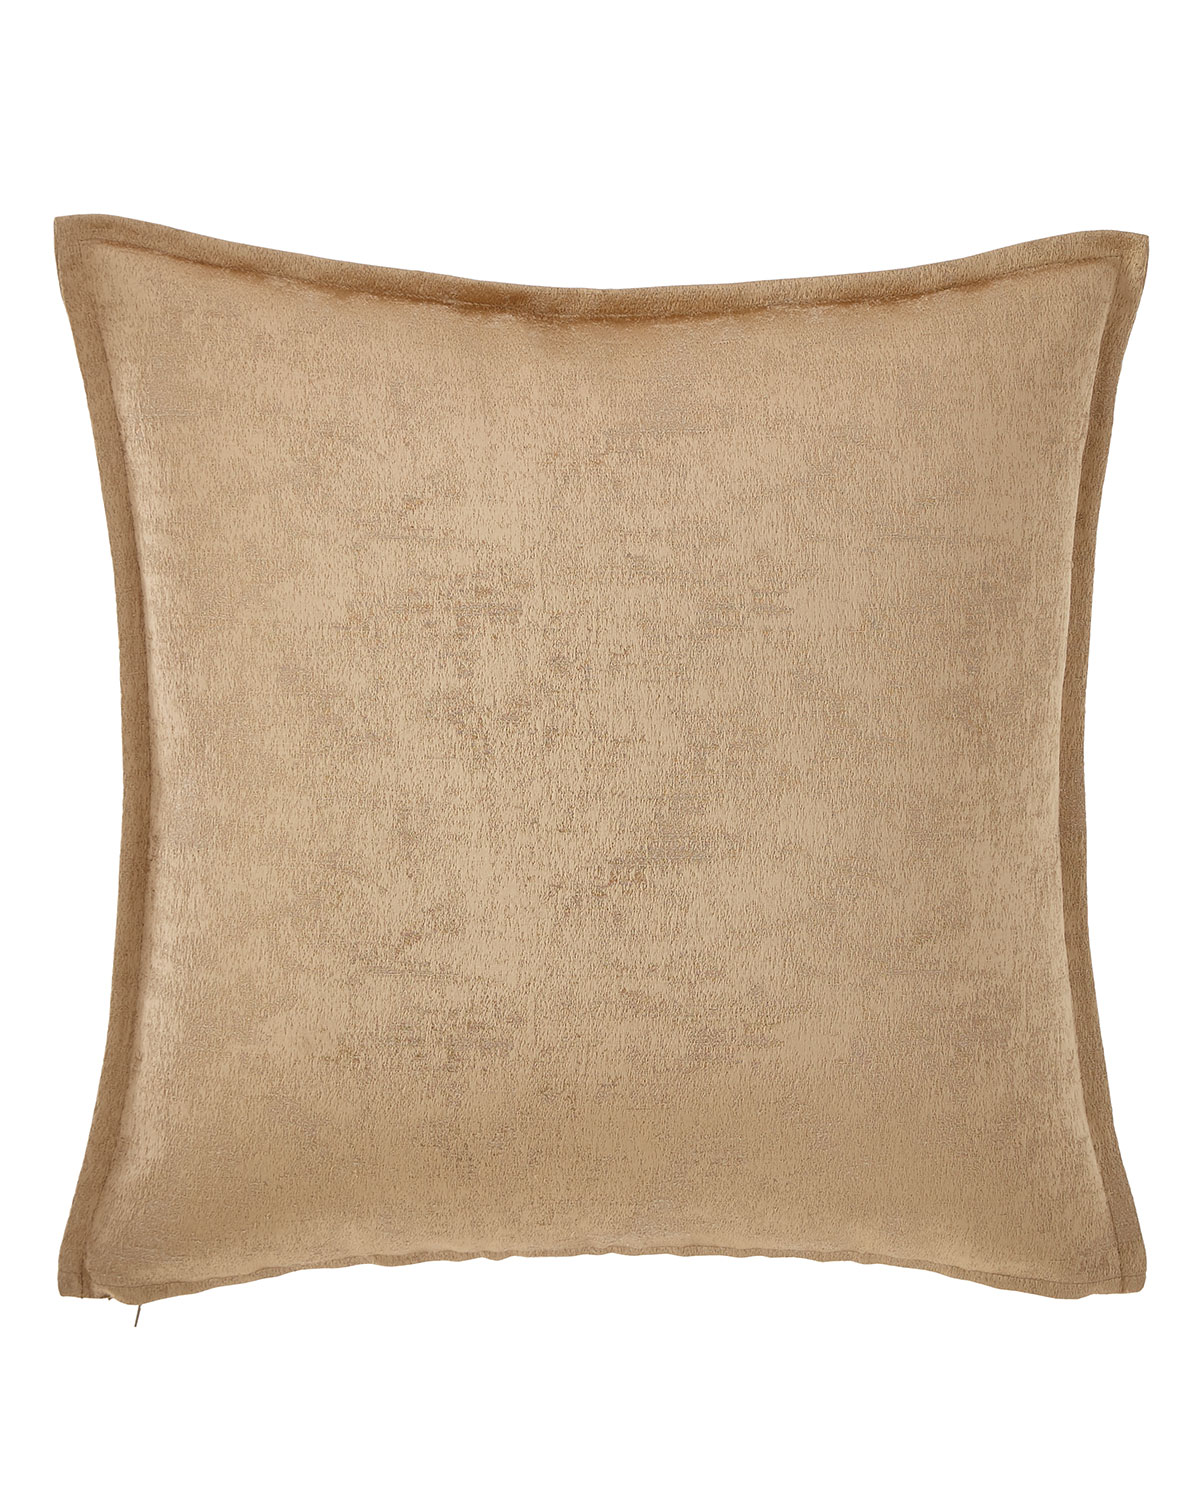 Shimmer Decorative Square Pillow